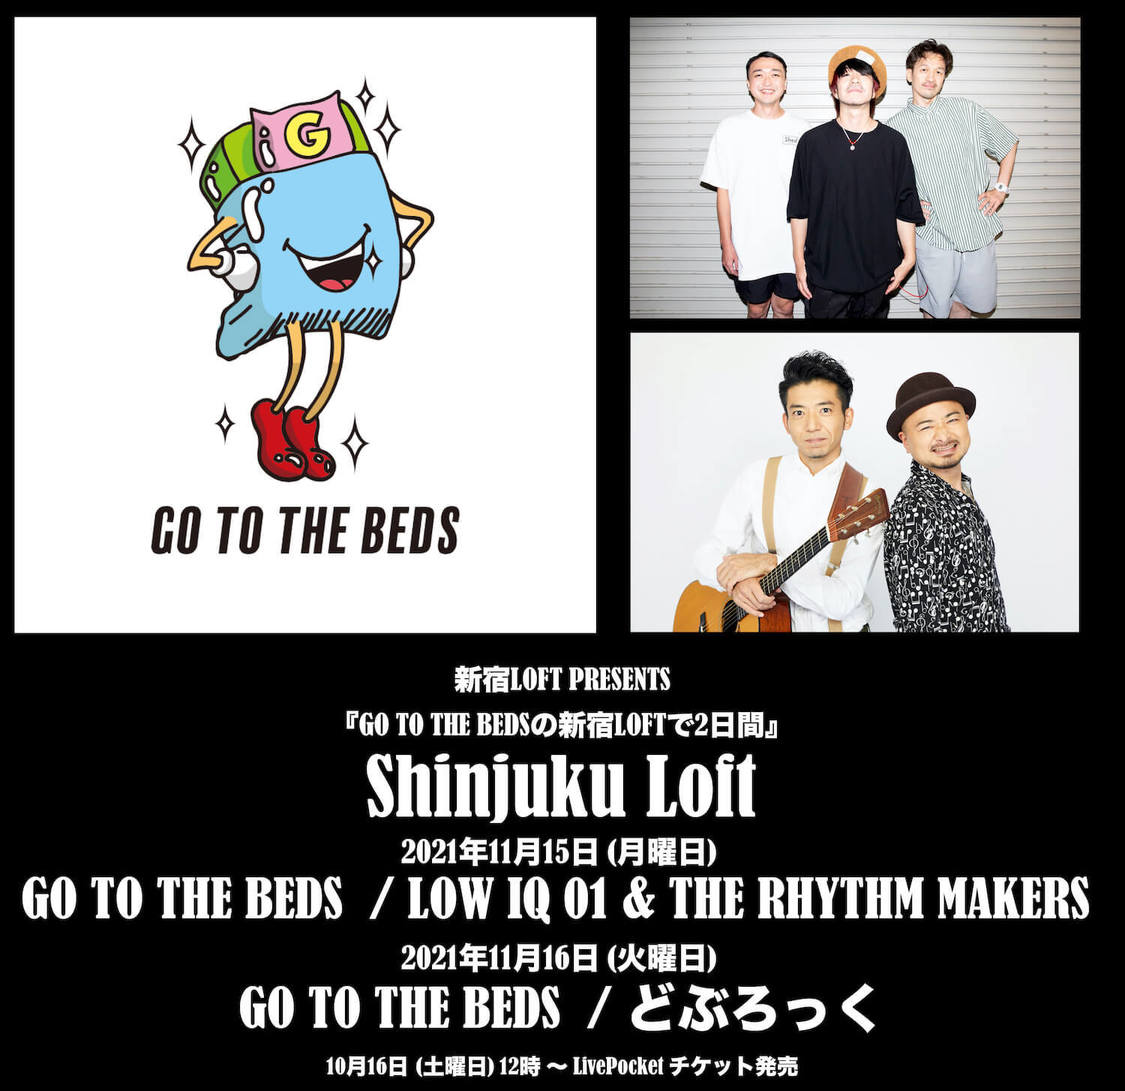 GO TO THE BEDS、2日間連続2マンイベント開催決定! ゲストはLOW IQ 01 & THE RHYTHM MAKERS、どぶろっく